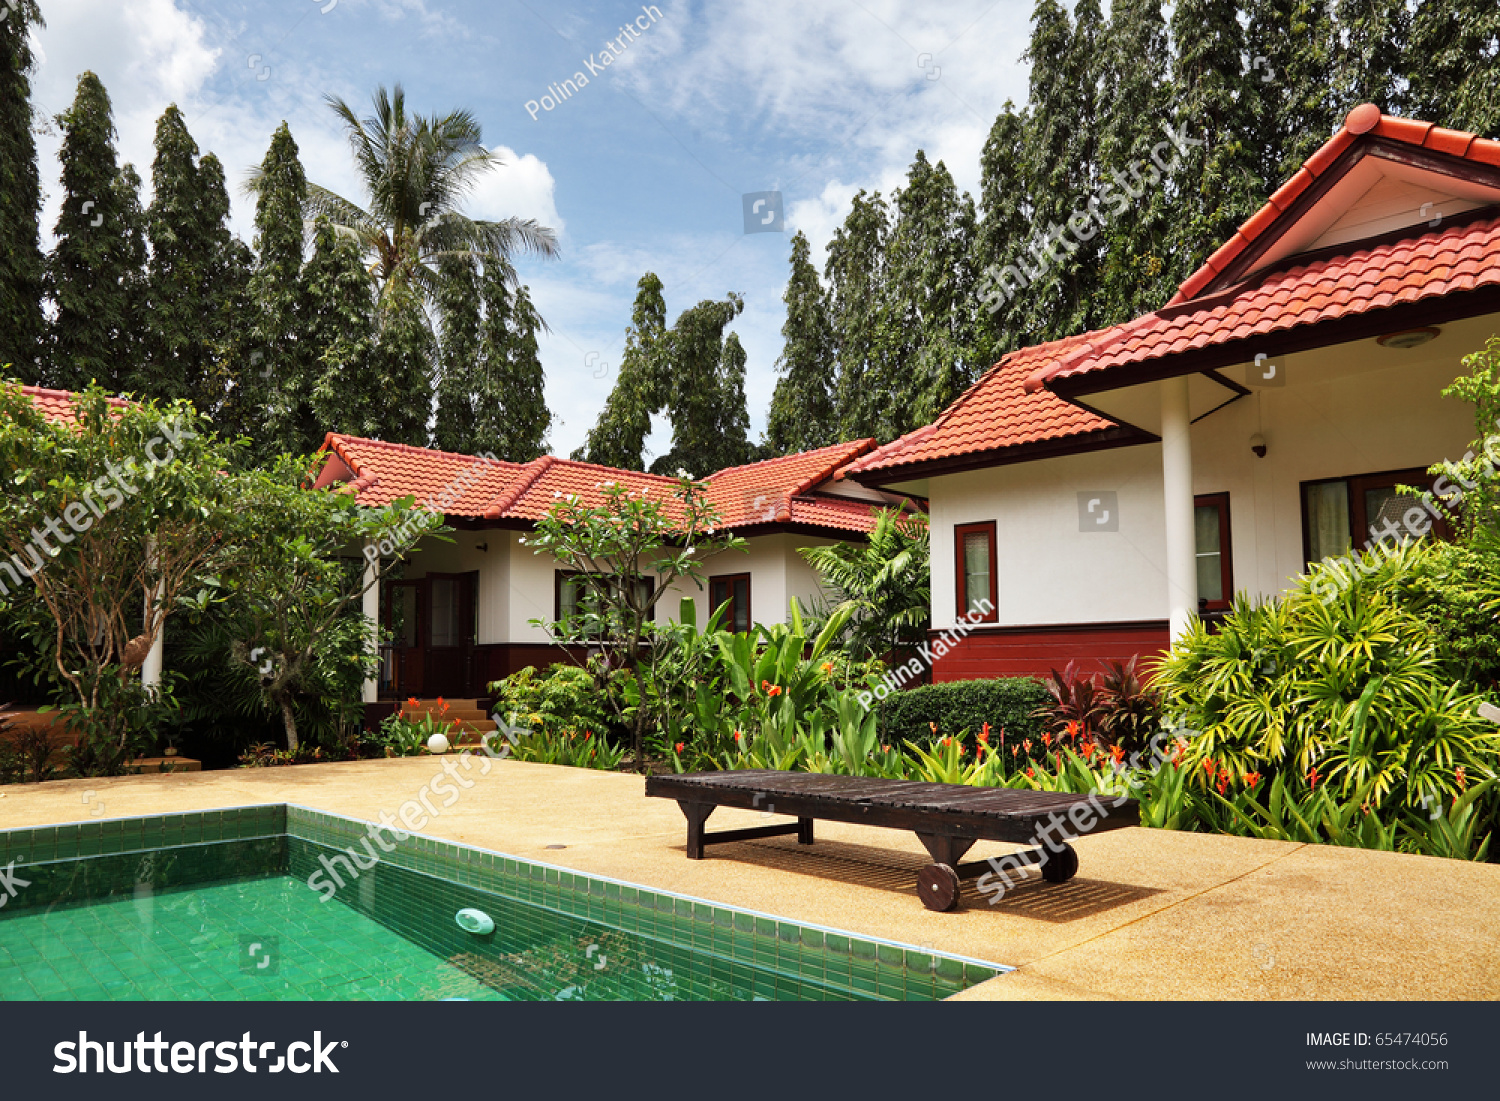 tropical houses with beautiful garden and pool - Beautiful Garden Pictures Houses